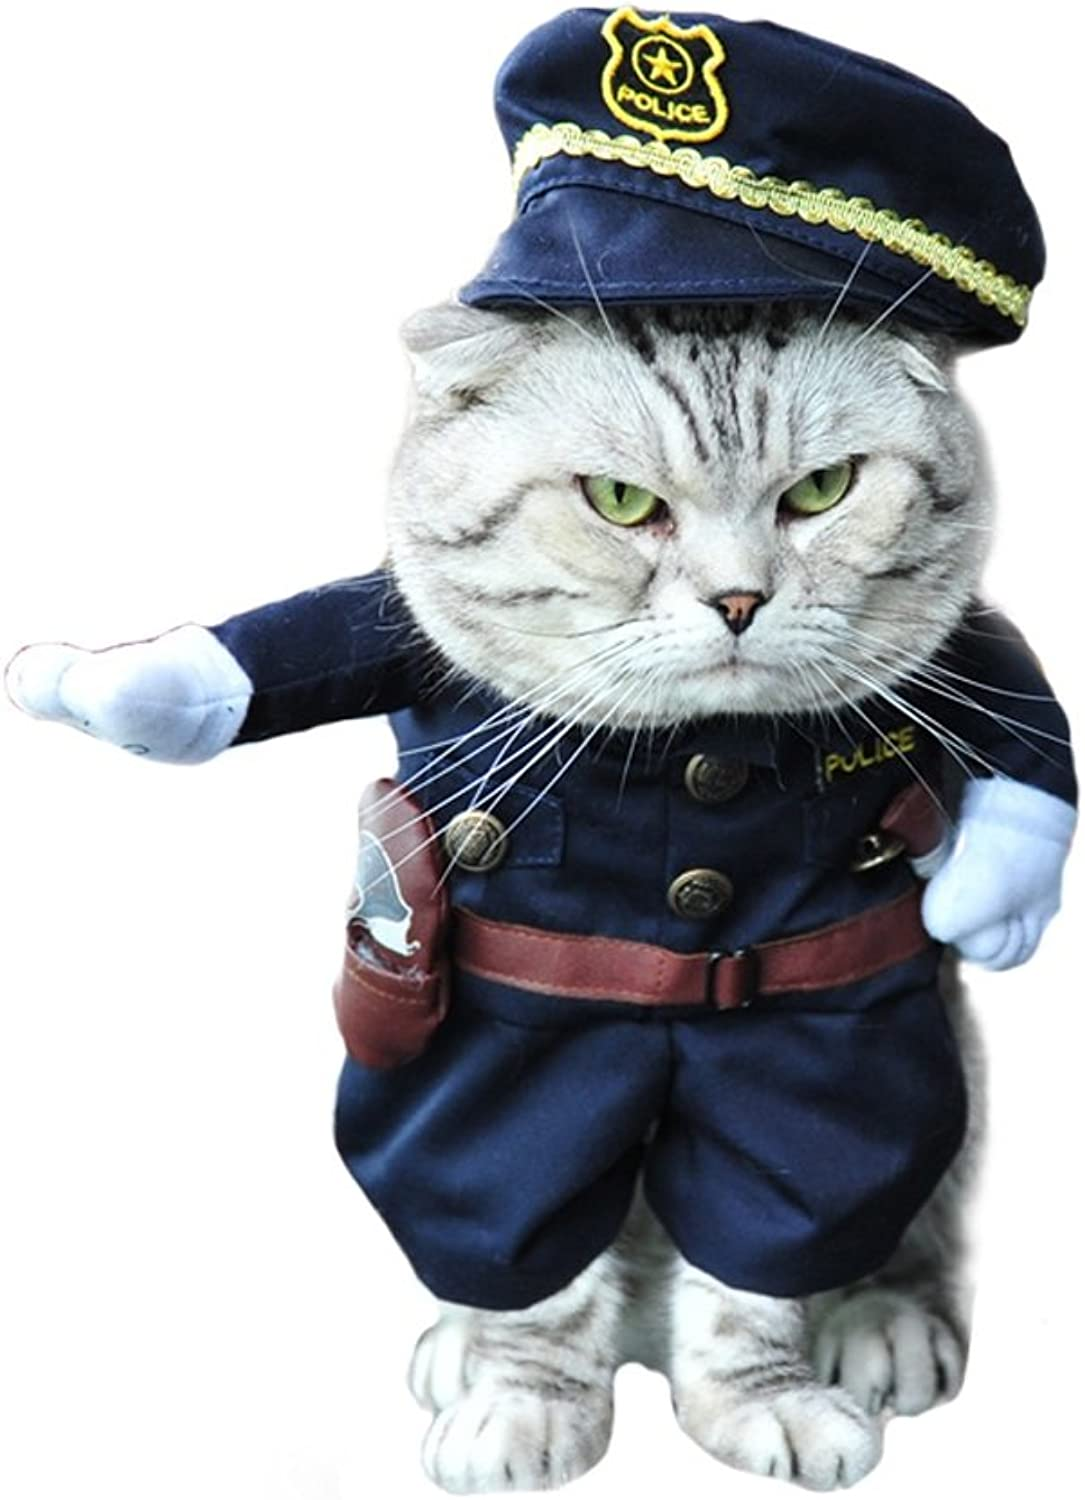 Albabara Pet Policeman Costumes Dog Cat Costume Clothes Novelty Funny Pets Halloween Party Cosplay Pet Suit Cool Police Uniform with Hat Dog Halloween Costumes for Small,Medium Dogs Cats